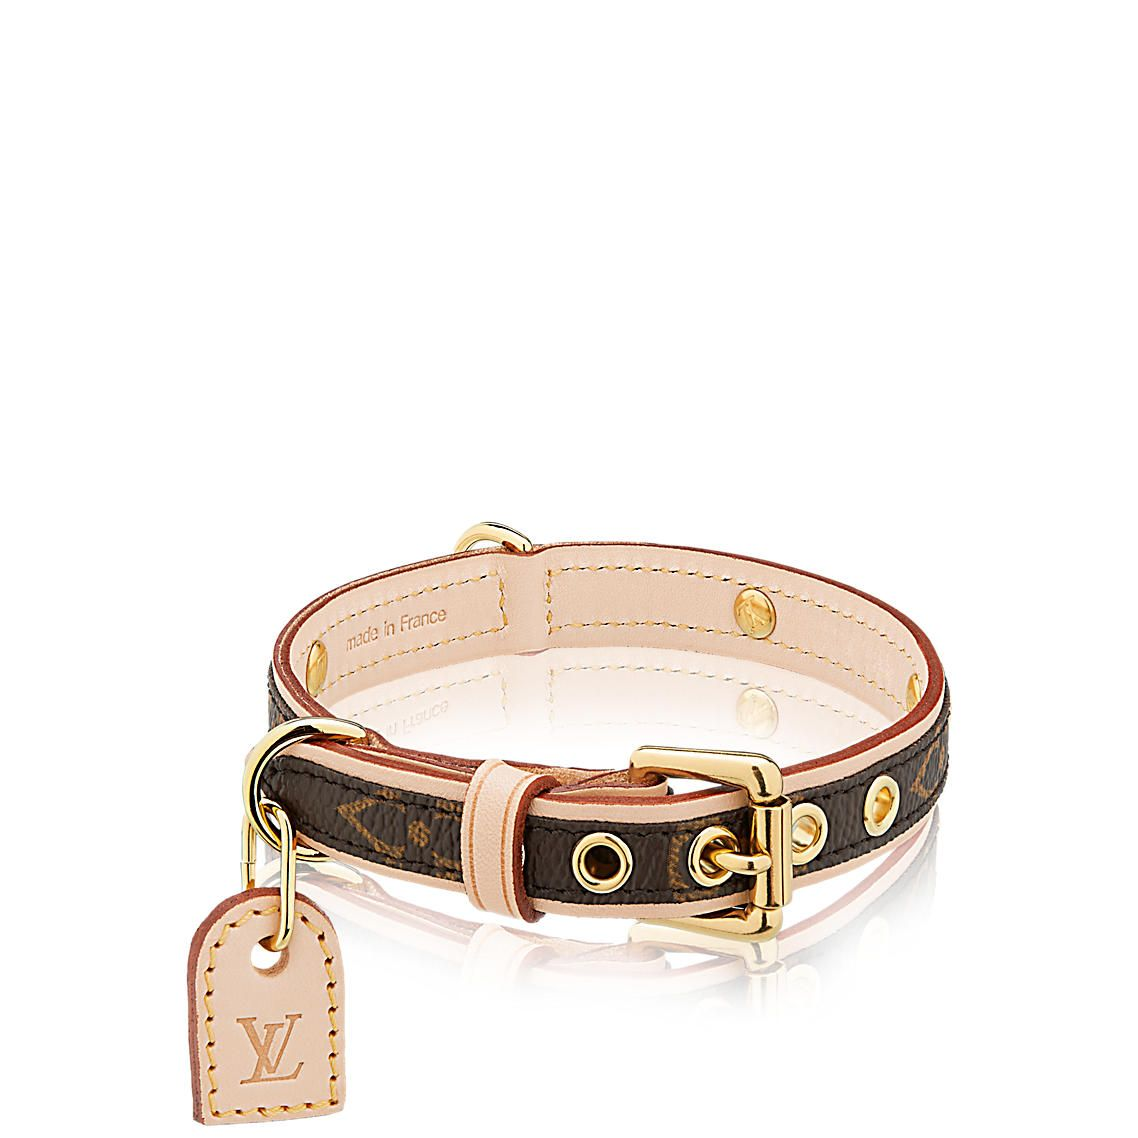 Discover Louis Vuitton Baxter Dog Collar Pm The Baxter Dog Collar Is Specially Designed For Small Dogs In Mon Dog Collar Baxter Dog Dog Accessories